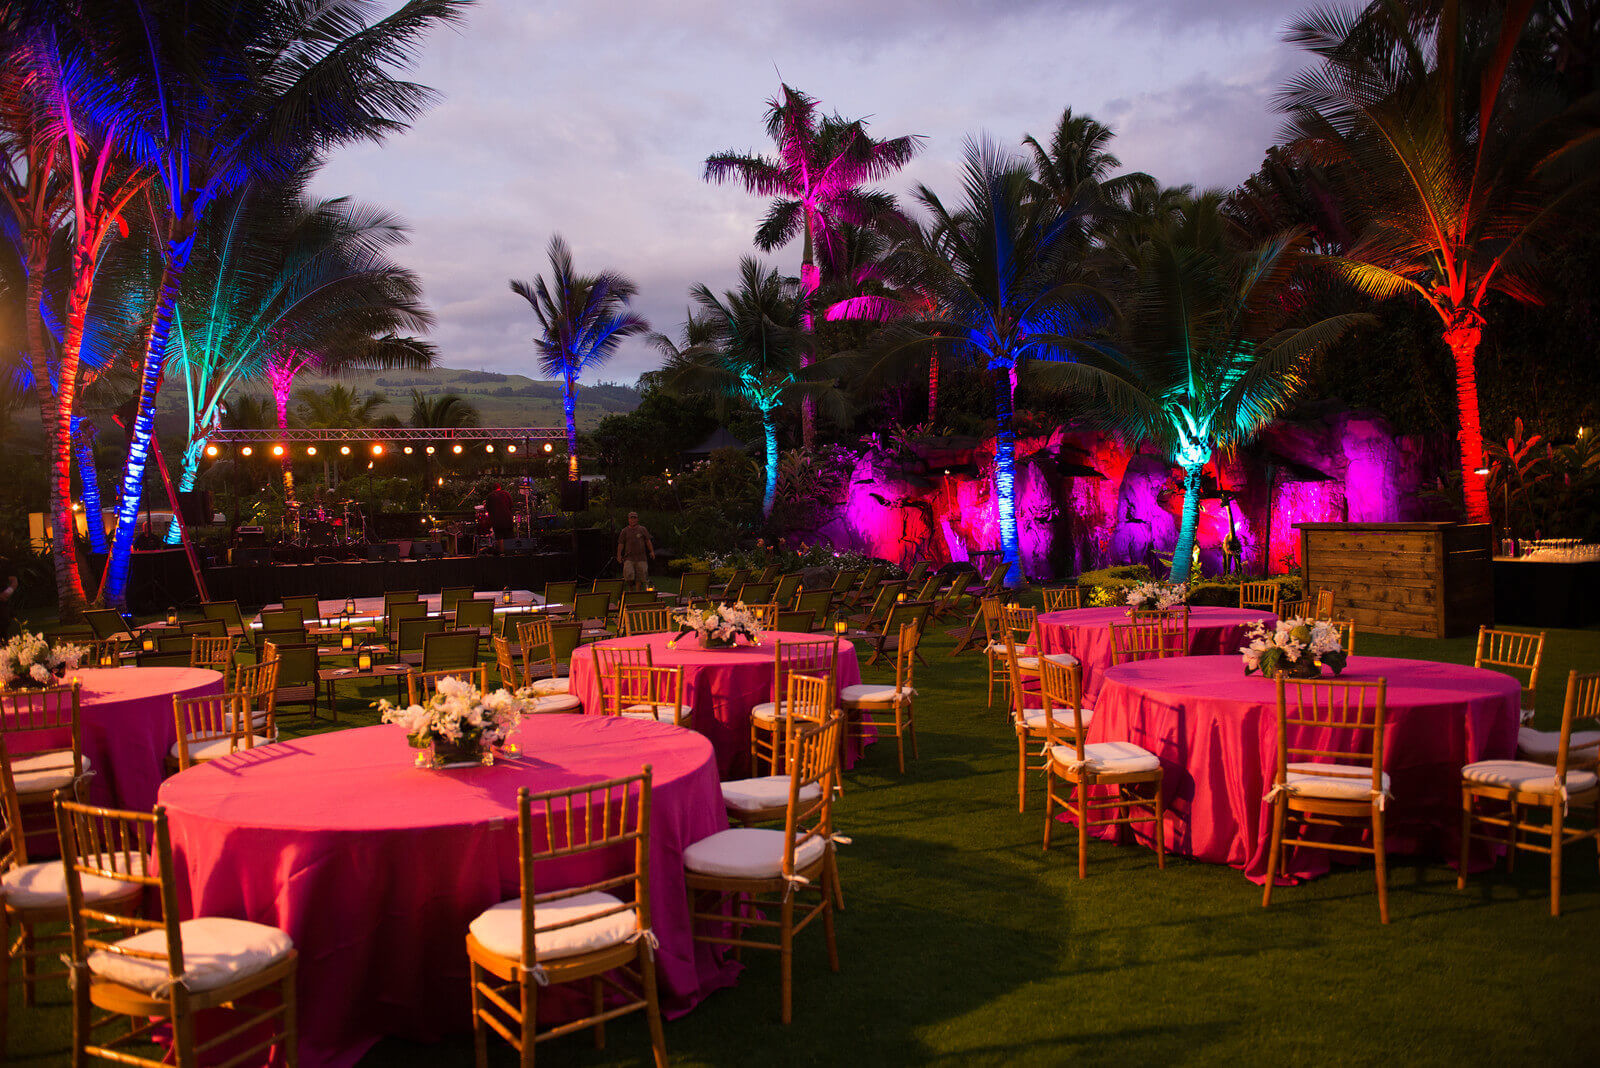 The tropical evening comes alive with brilliant color and lighting.